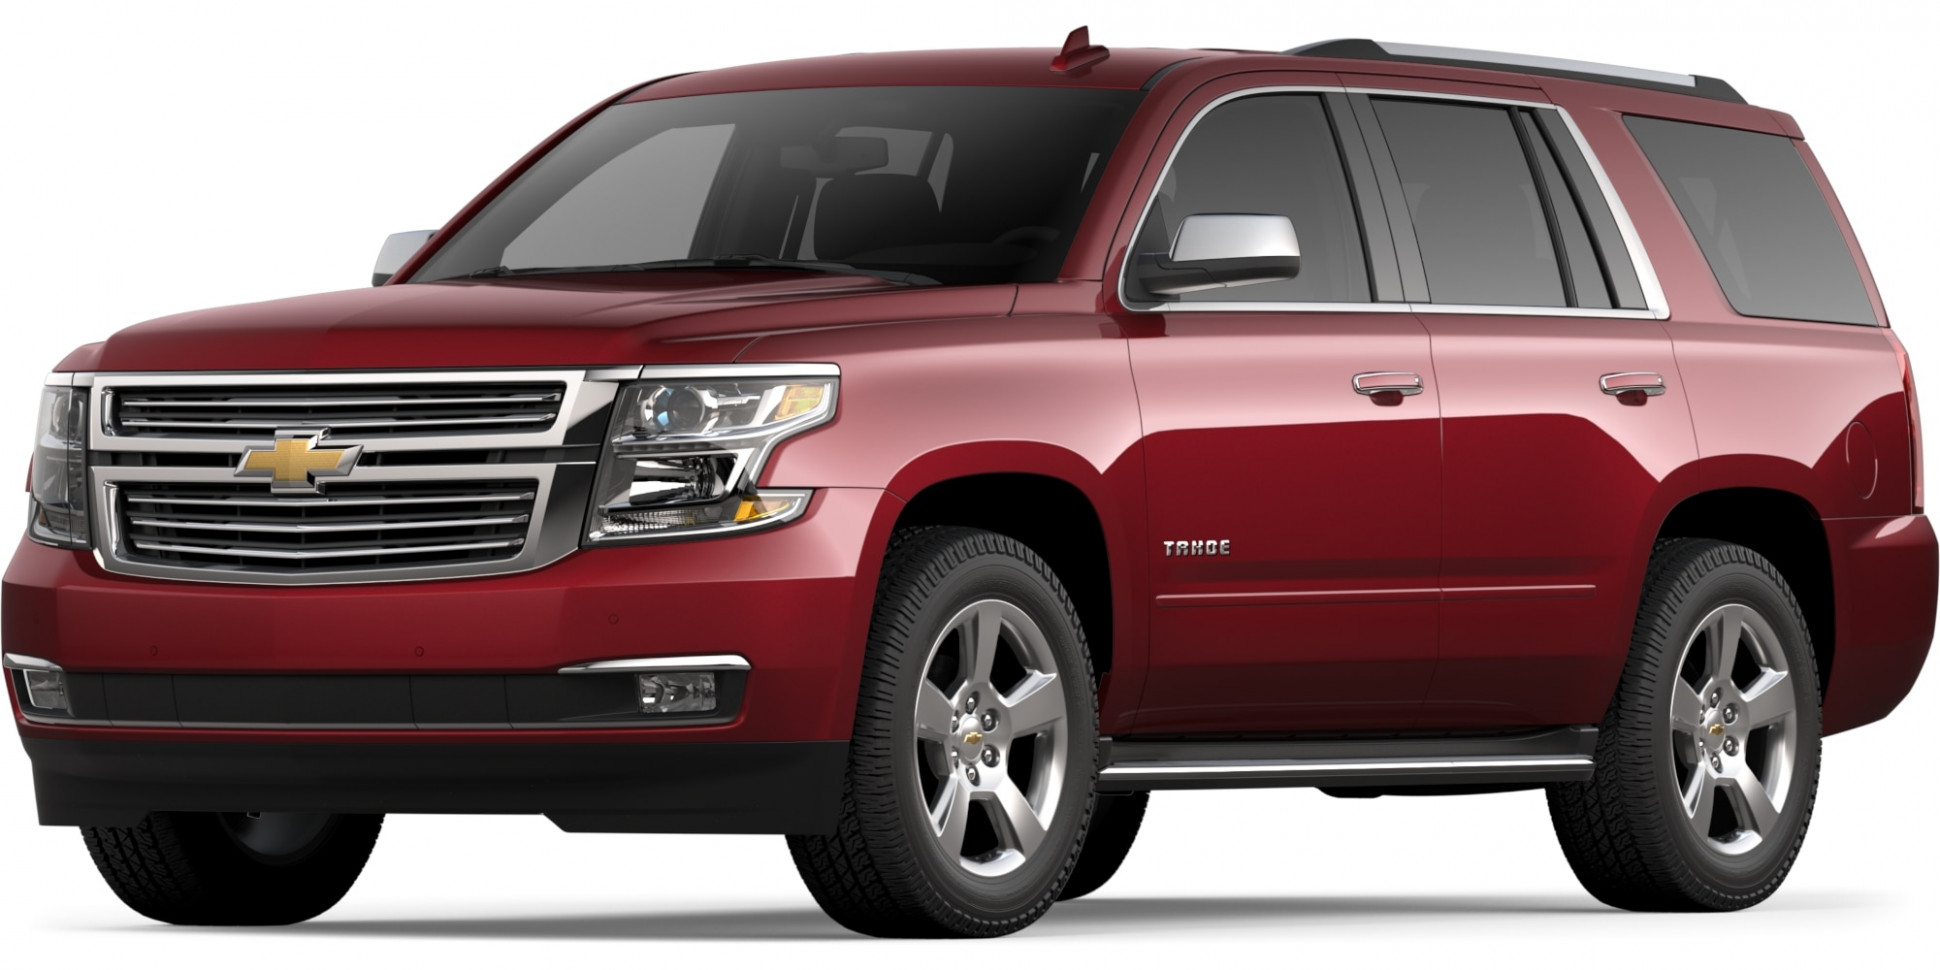 11 Chevy Tahoe | Full-Size SUV, 11-Row SUV, 11-11 Seater SUV | 2020 Chevrolet Tahoe